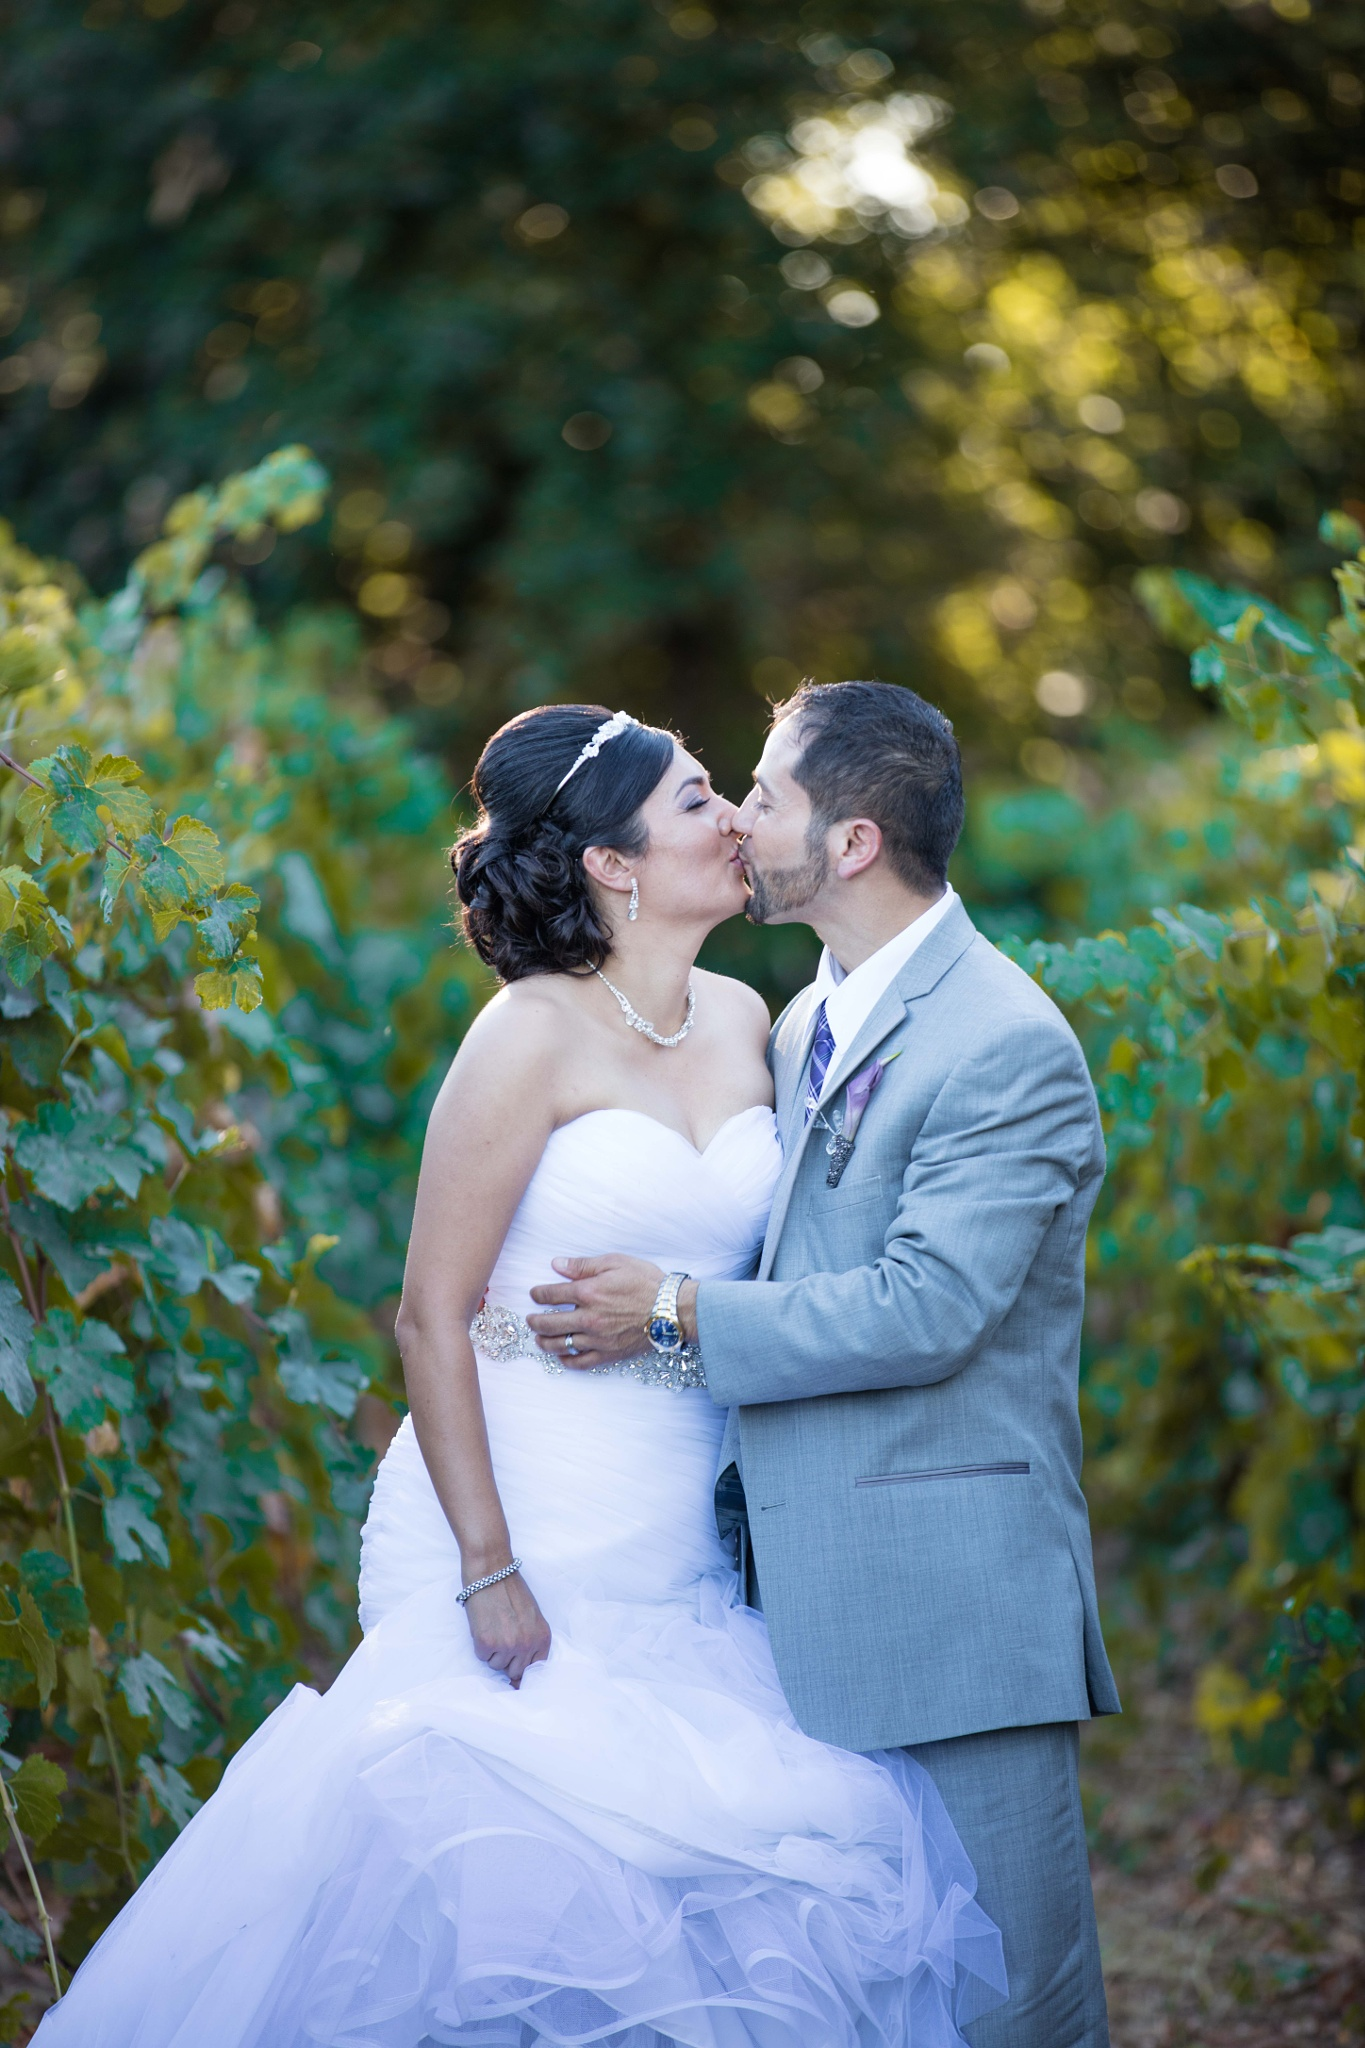 Newlyweds in the Vineyard by McBridePictures.com